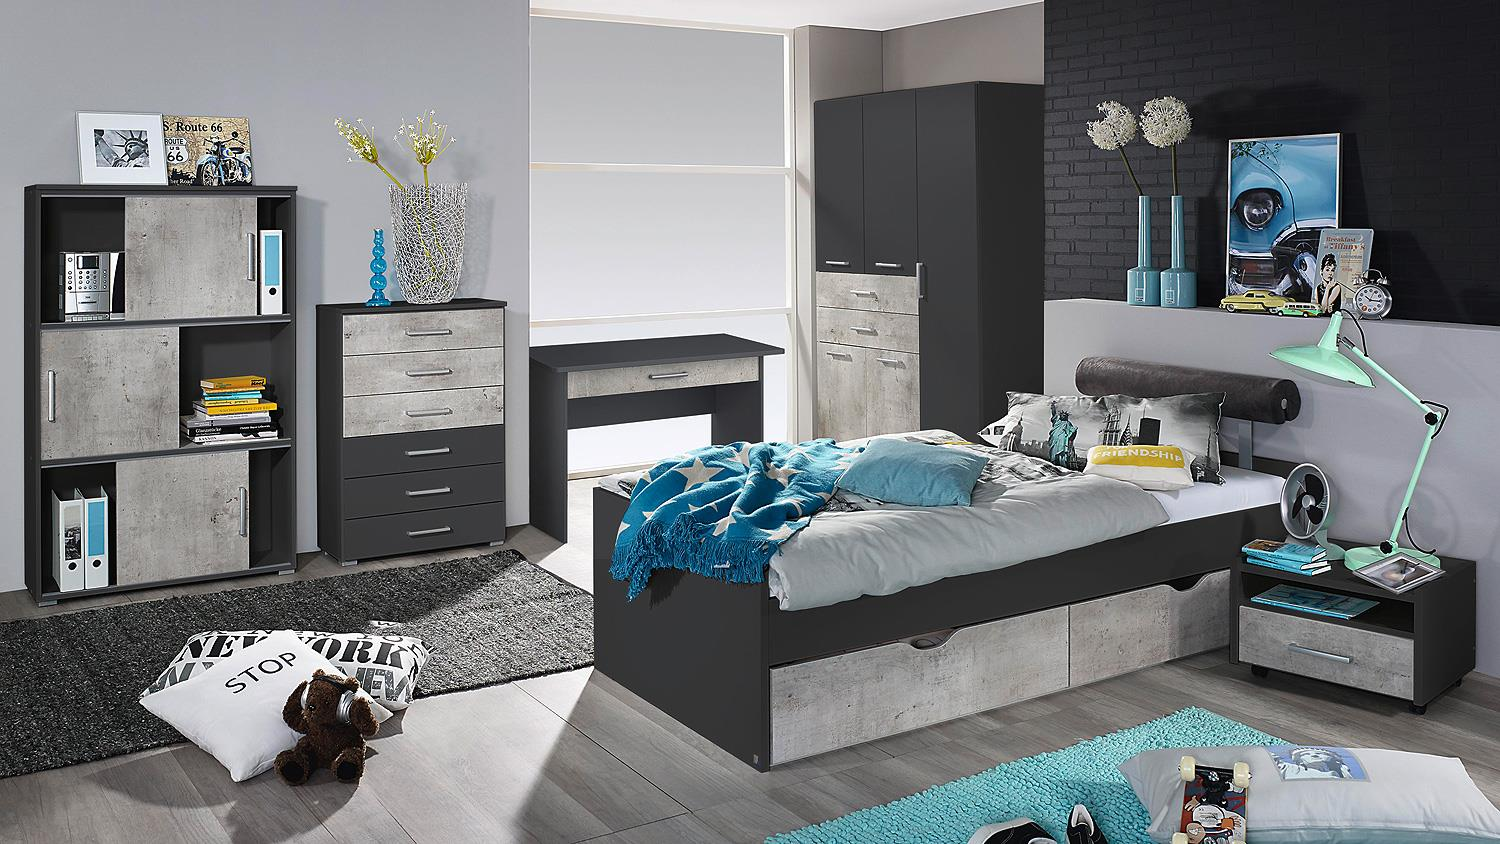 bett mailo umbauliege liege f r jugendzimmer in grau. Black Bedroom Furniture Sets. Home Design Ideas